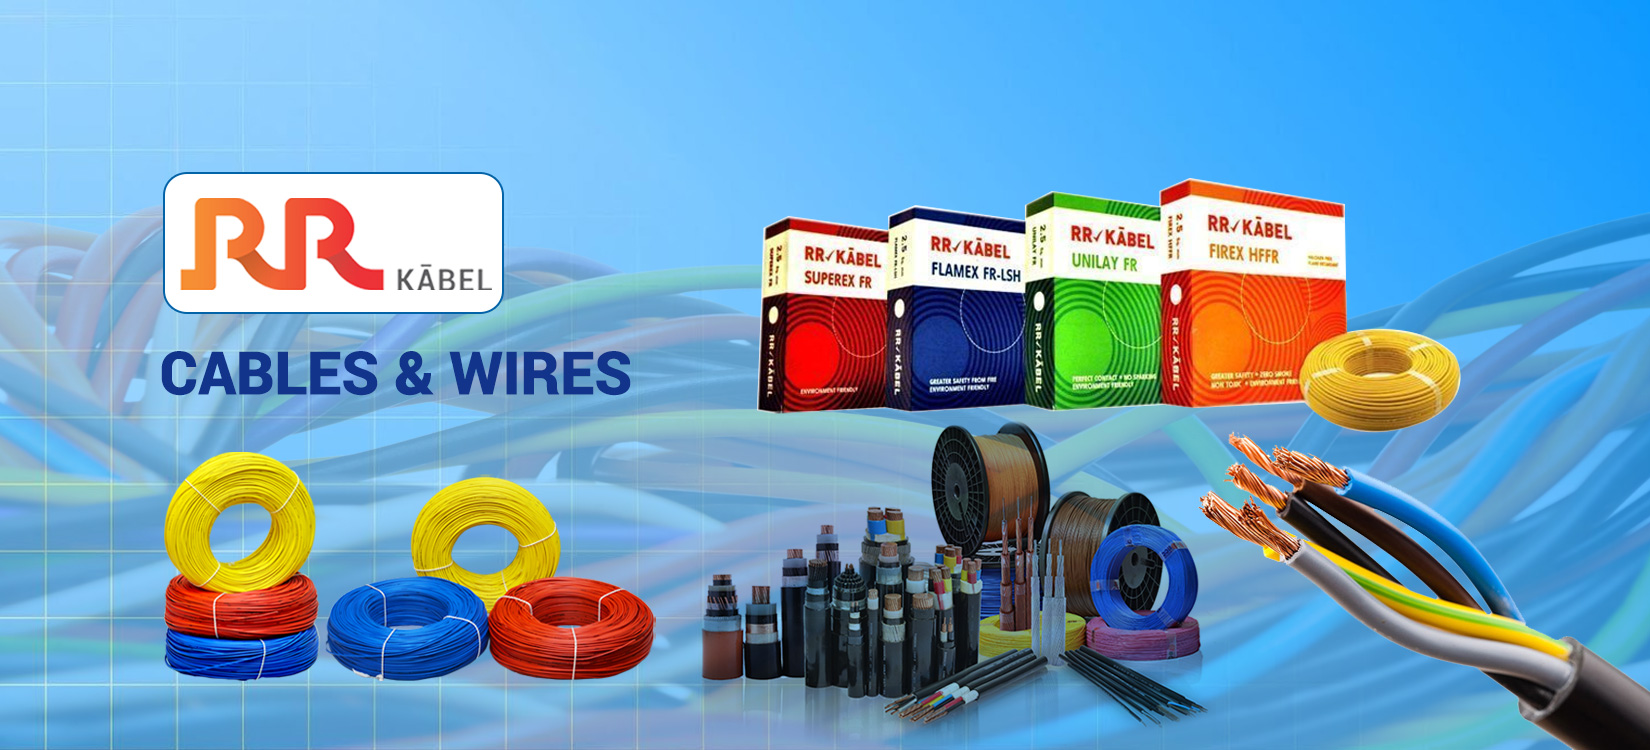 Rr Cables Wires Banner Bhumi Electricals